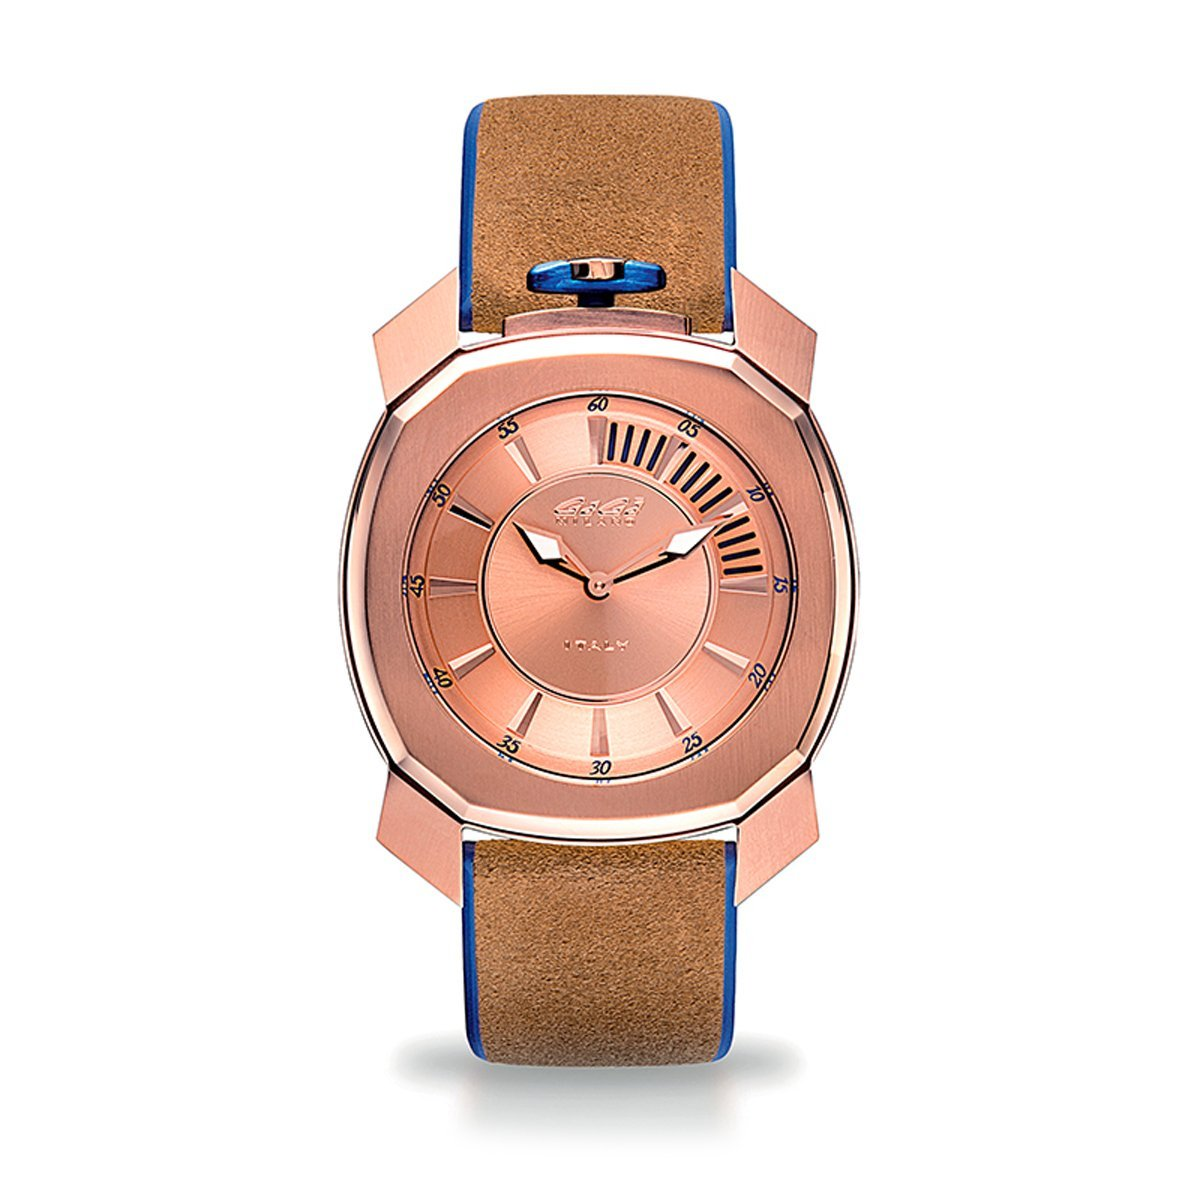 Gaga Milano Frame_One Pink Gold - Watches & Crystals